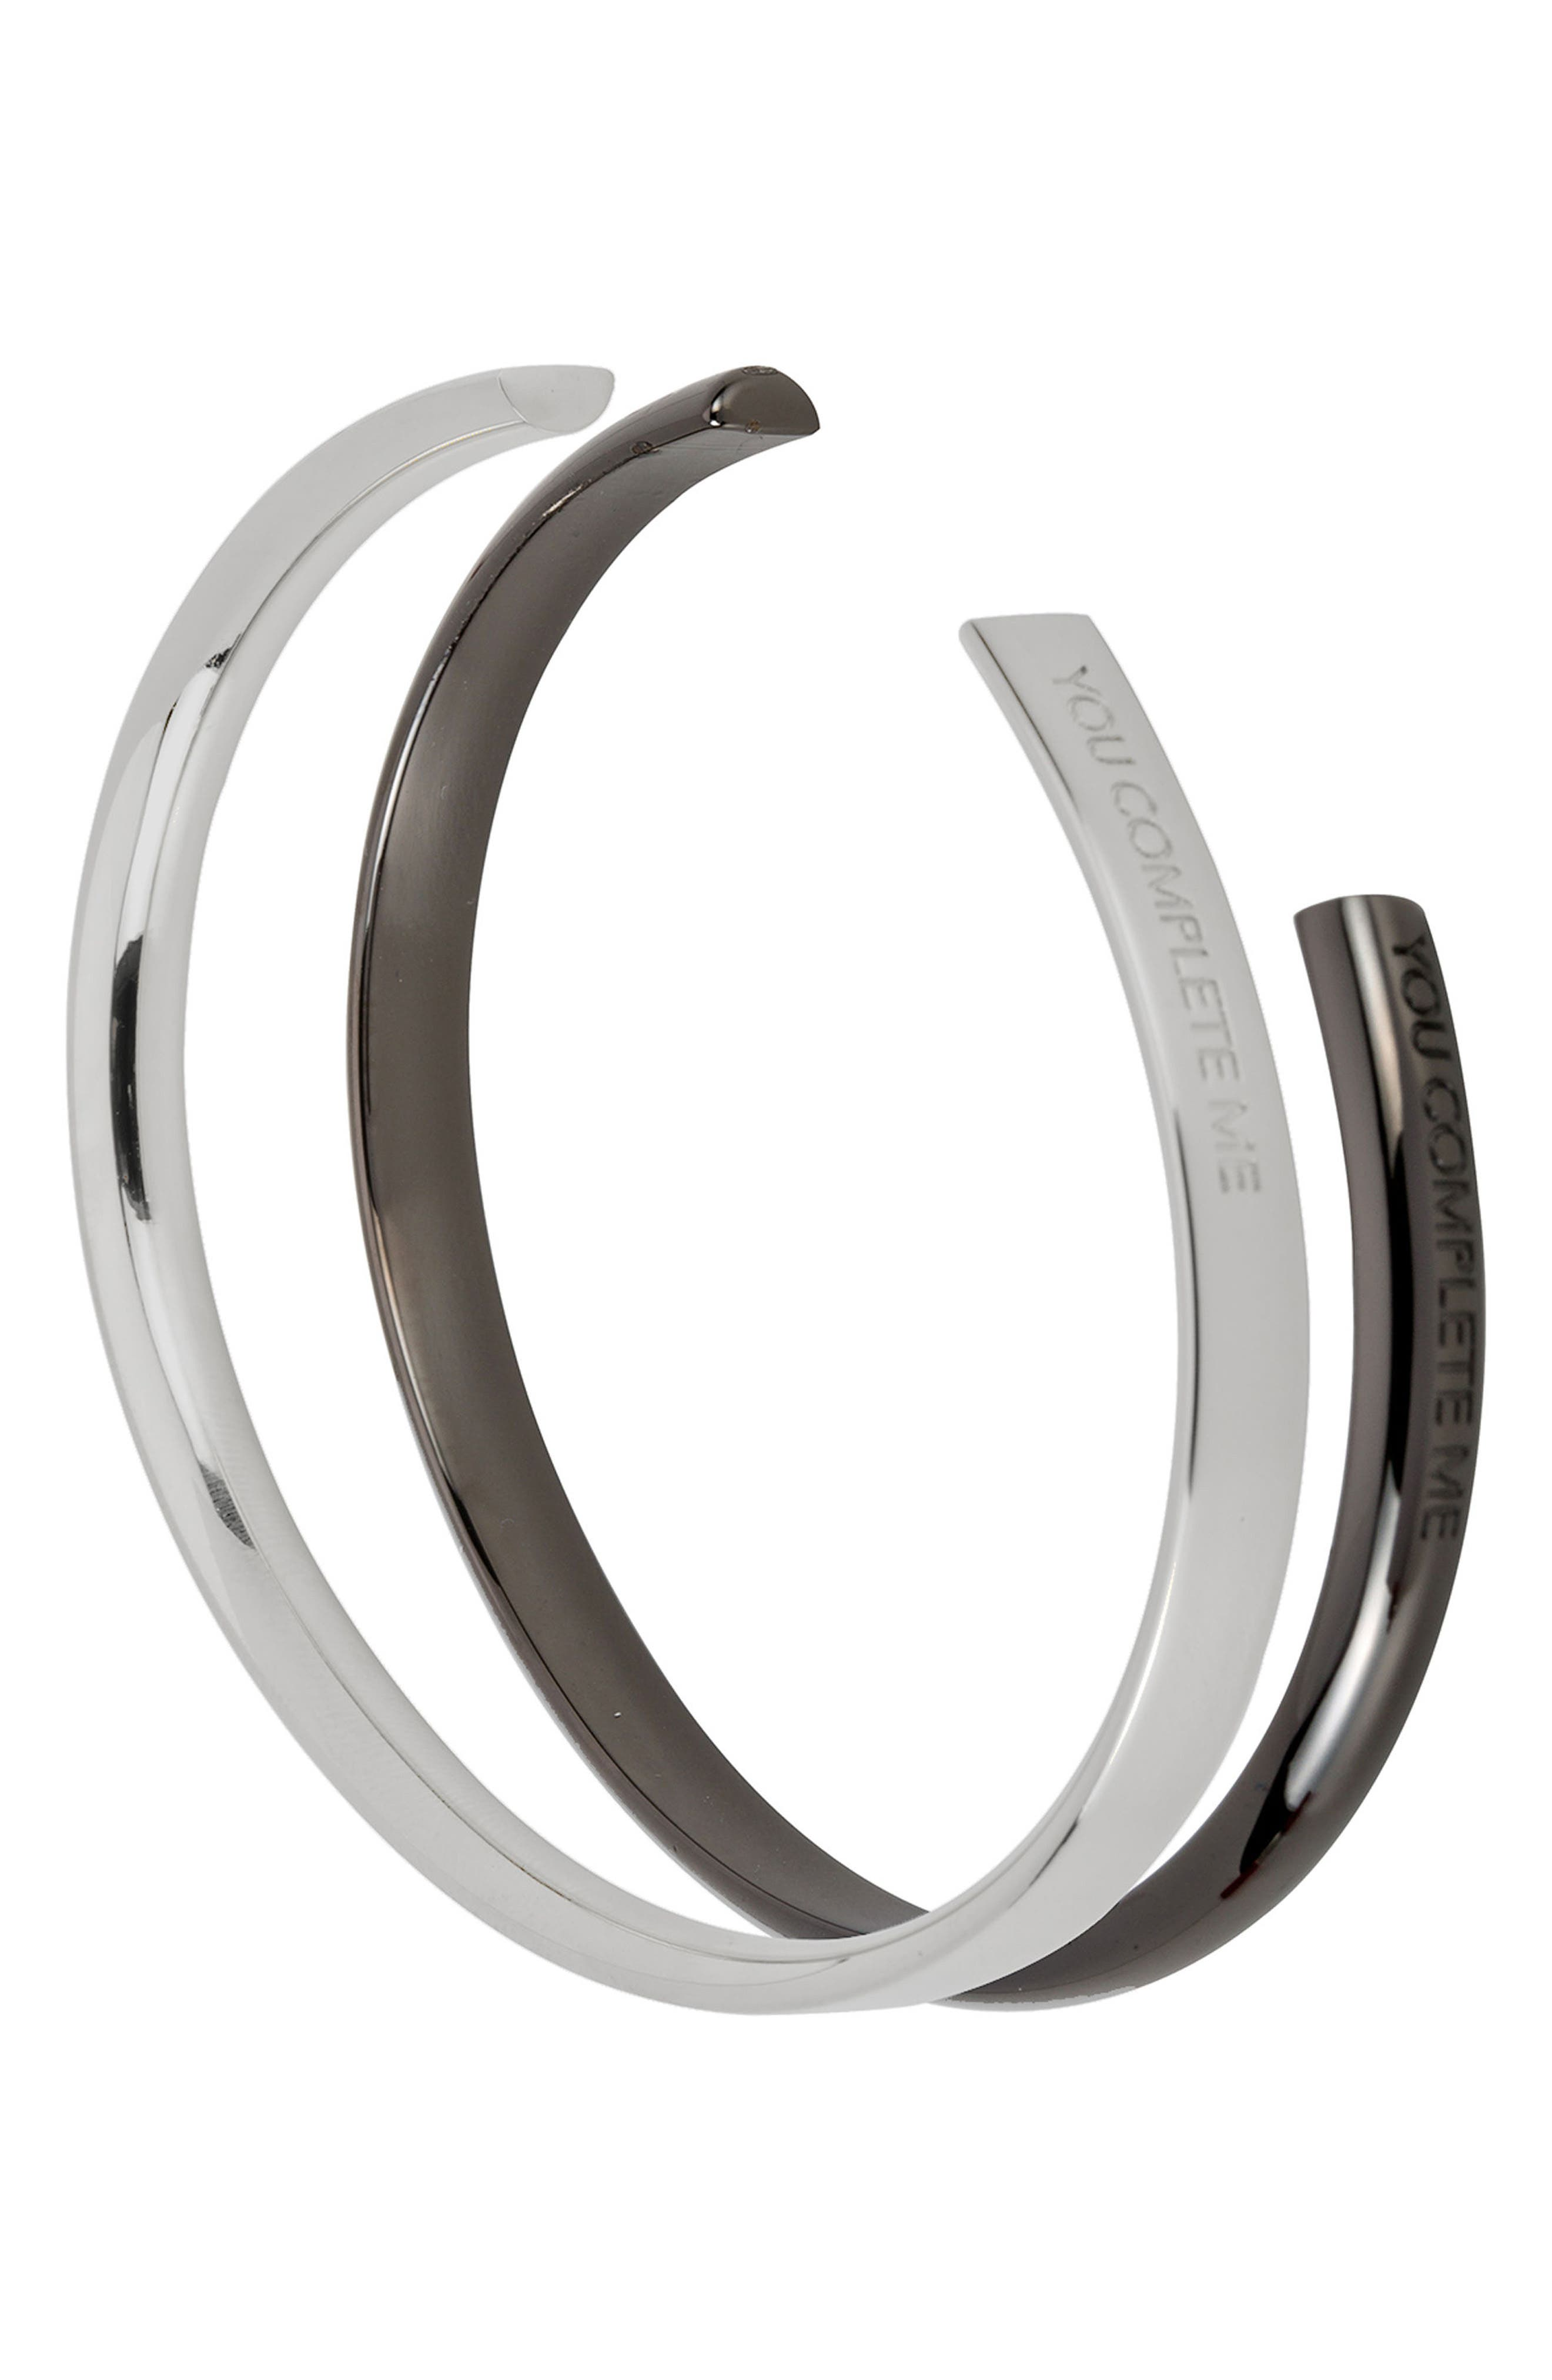 You Complete Me Set of 2 Cuffs,                         Main,                         color, SILVER